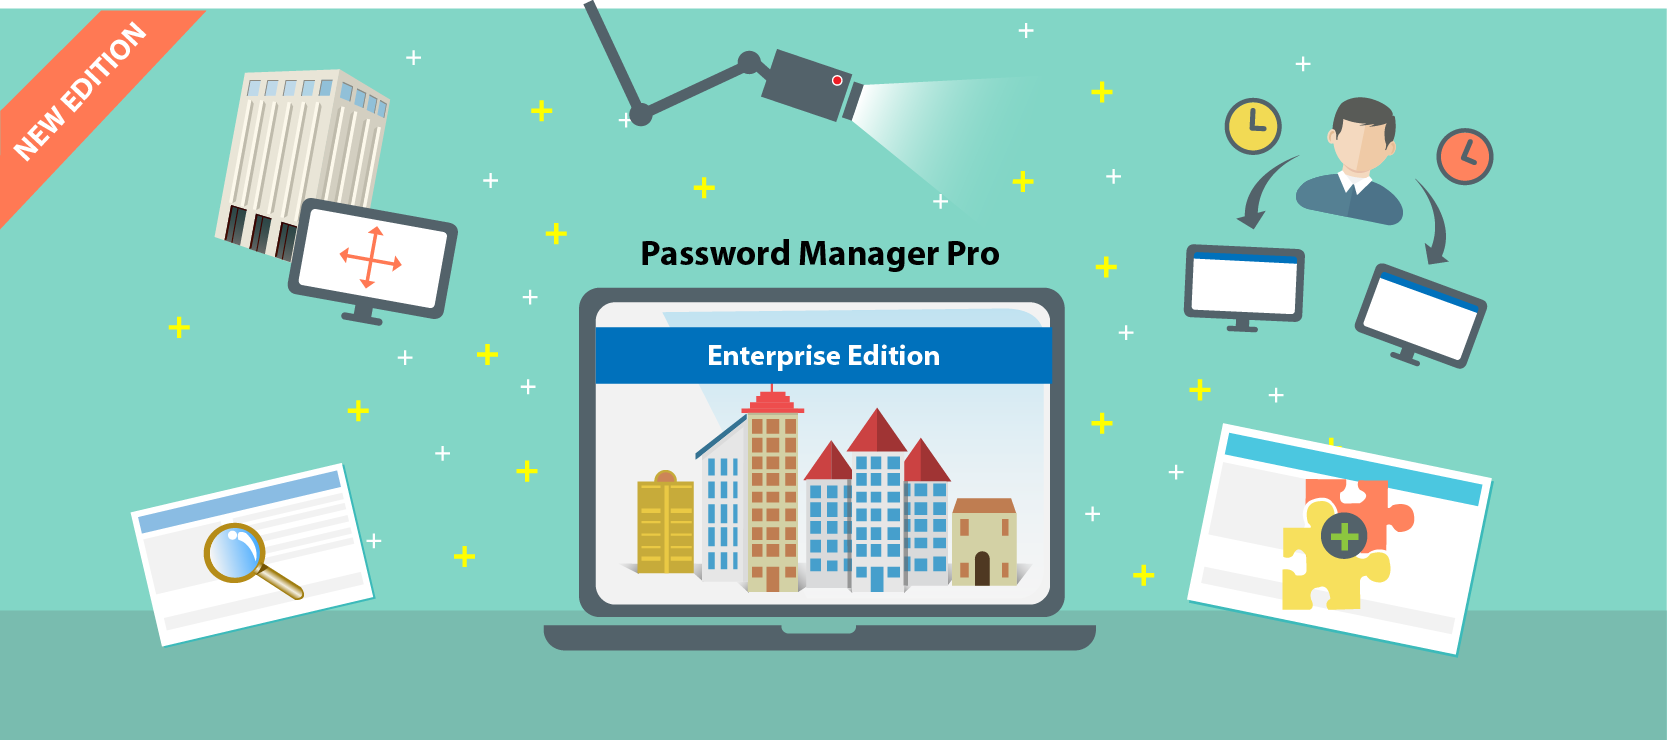 Combat Identity Thefts and Advanced Cyber Threats with Password Manager Pro Enterprise Edition